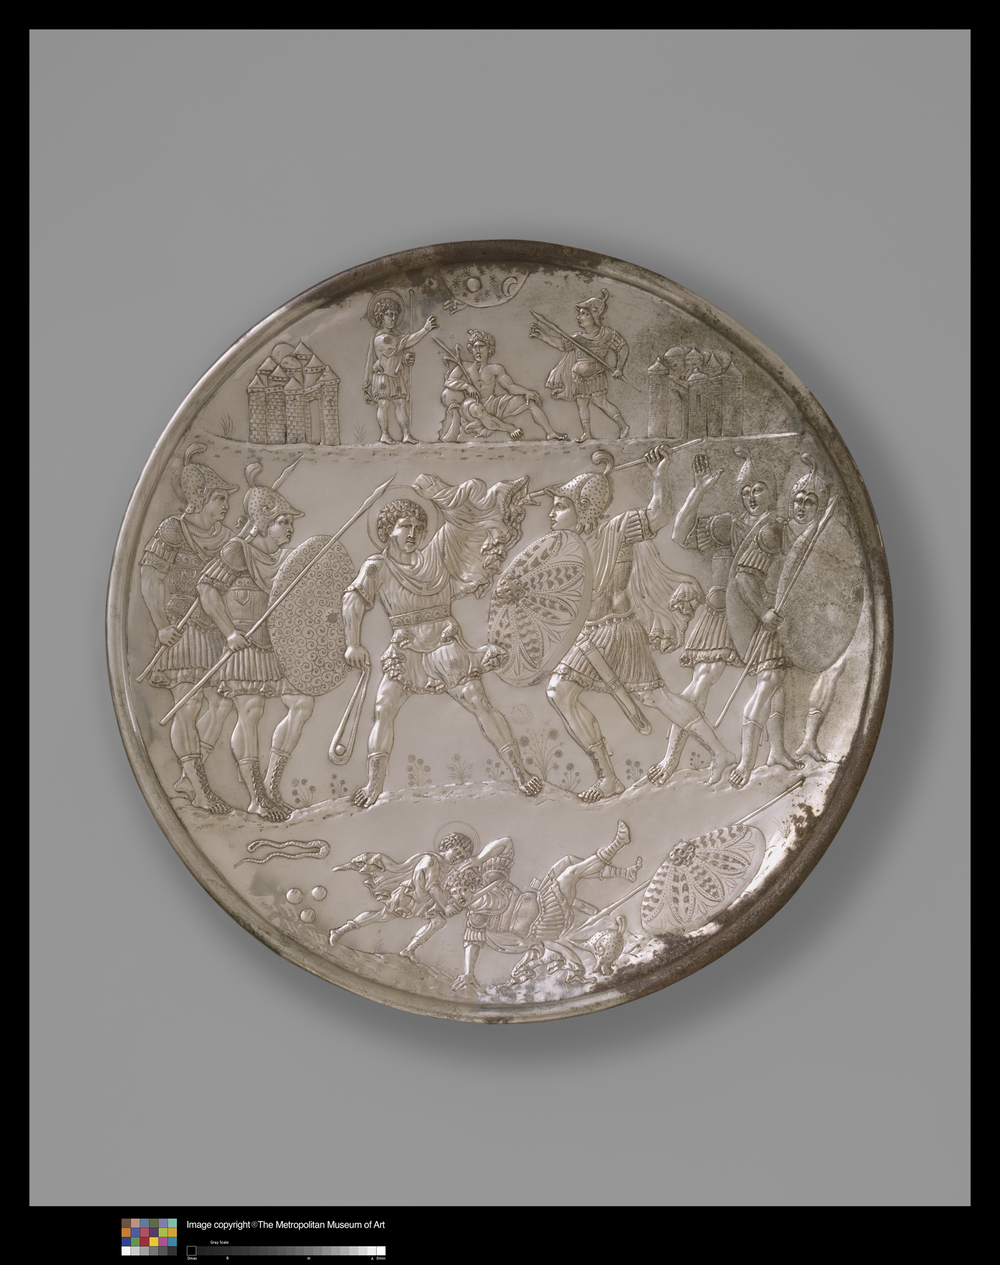 Fig. 3 David and Goliath silver plate, 629-630 CE. The Metropolitan Museum of Art, Gift of J. Pierpont Morgan, 1917 (17.190.396).